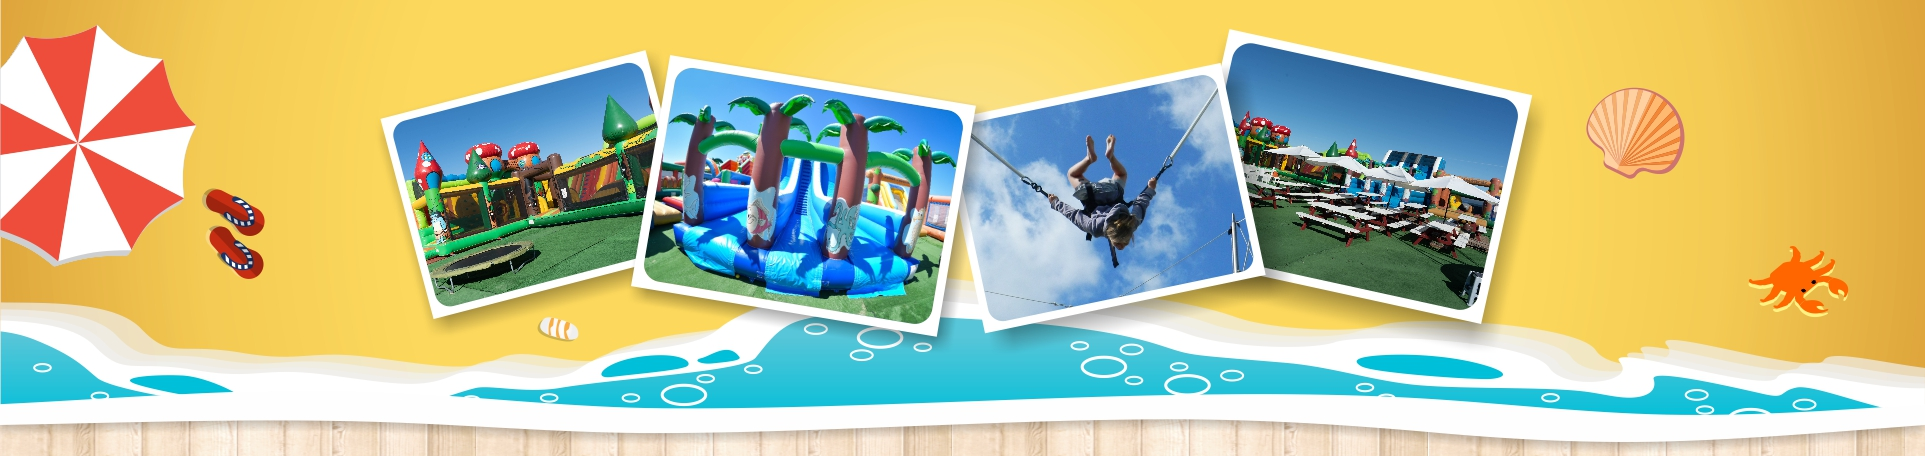 parc attractions loisirs enfants famille trampolines gonflables normandie